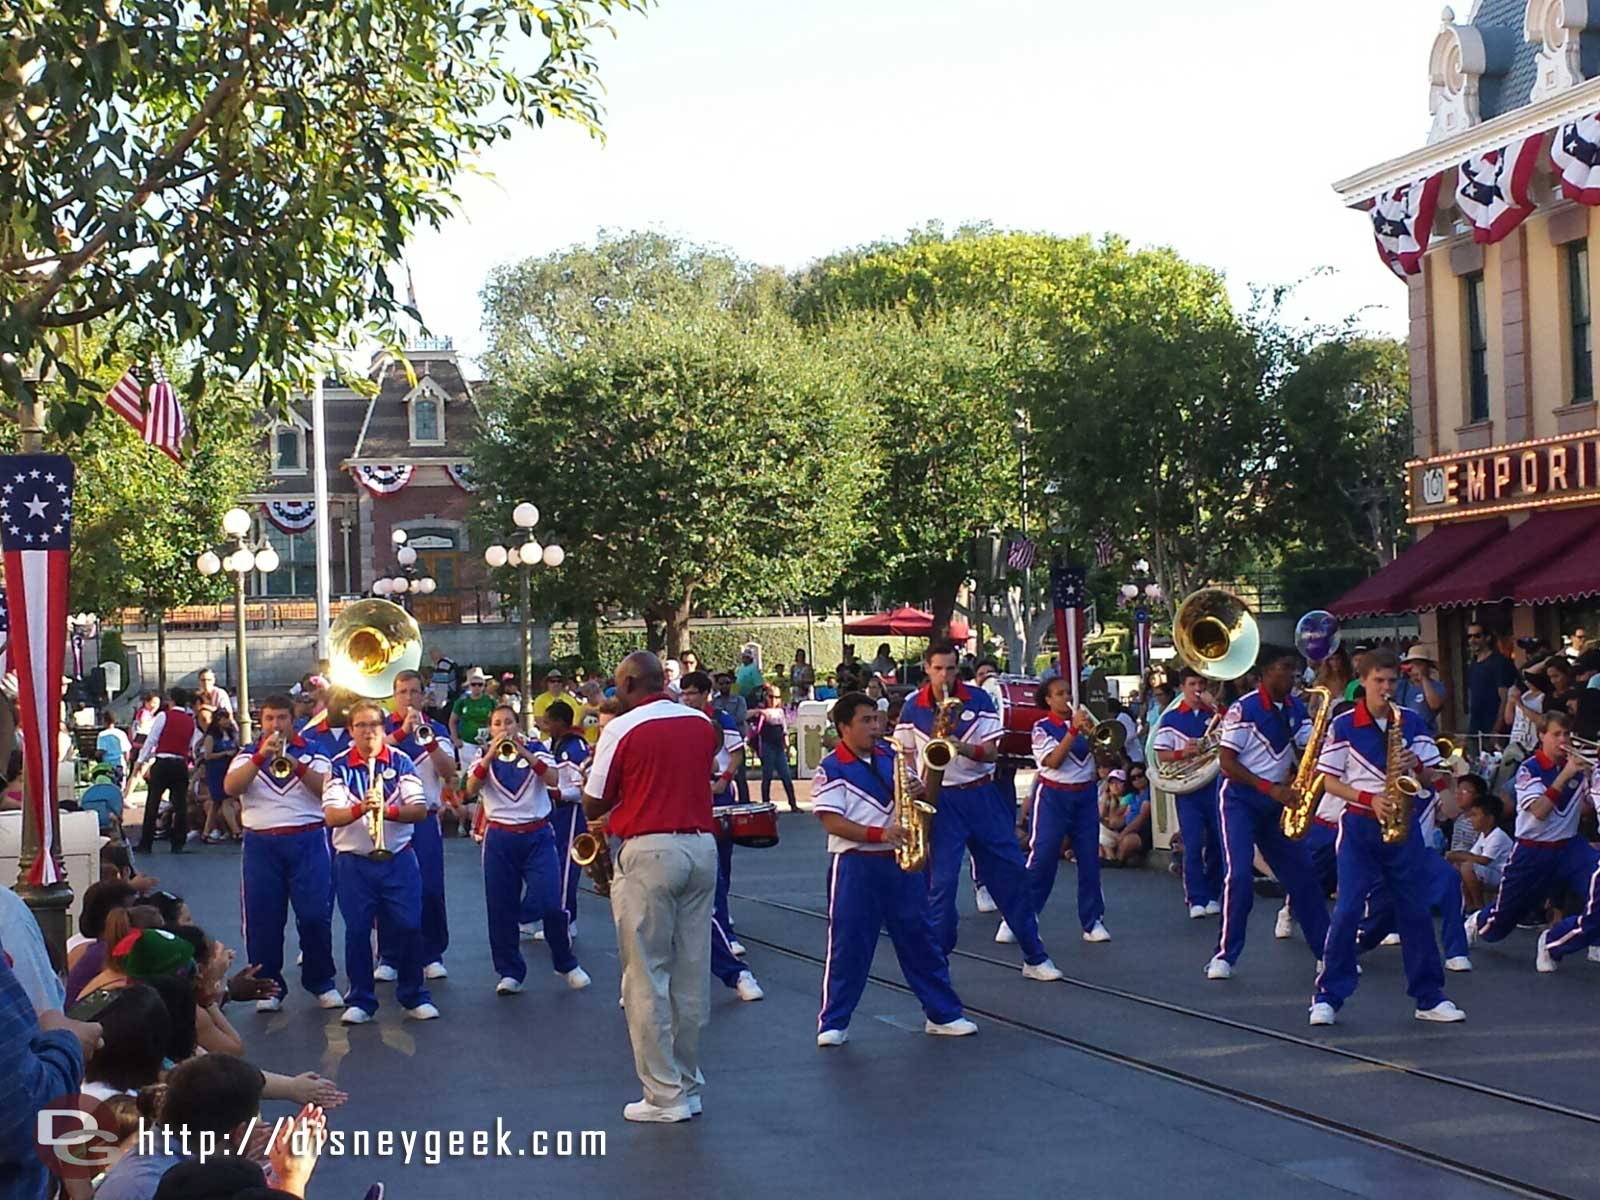 The #Disneyland 2014 All-American College Band performing on Main Street USA